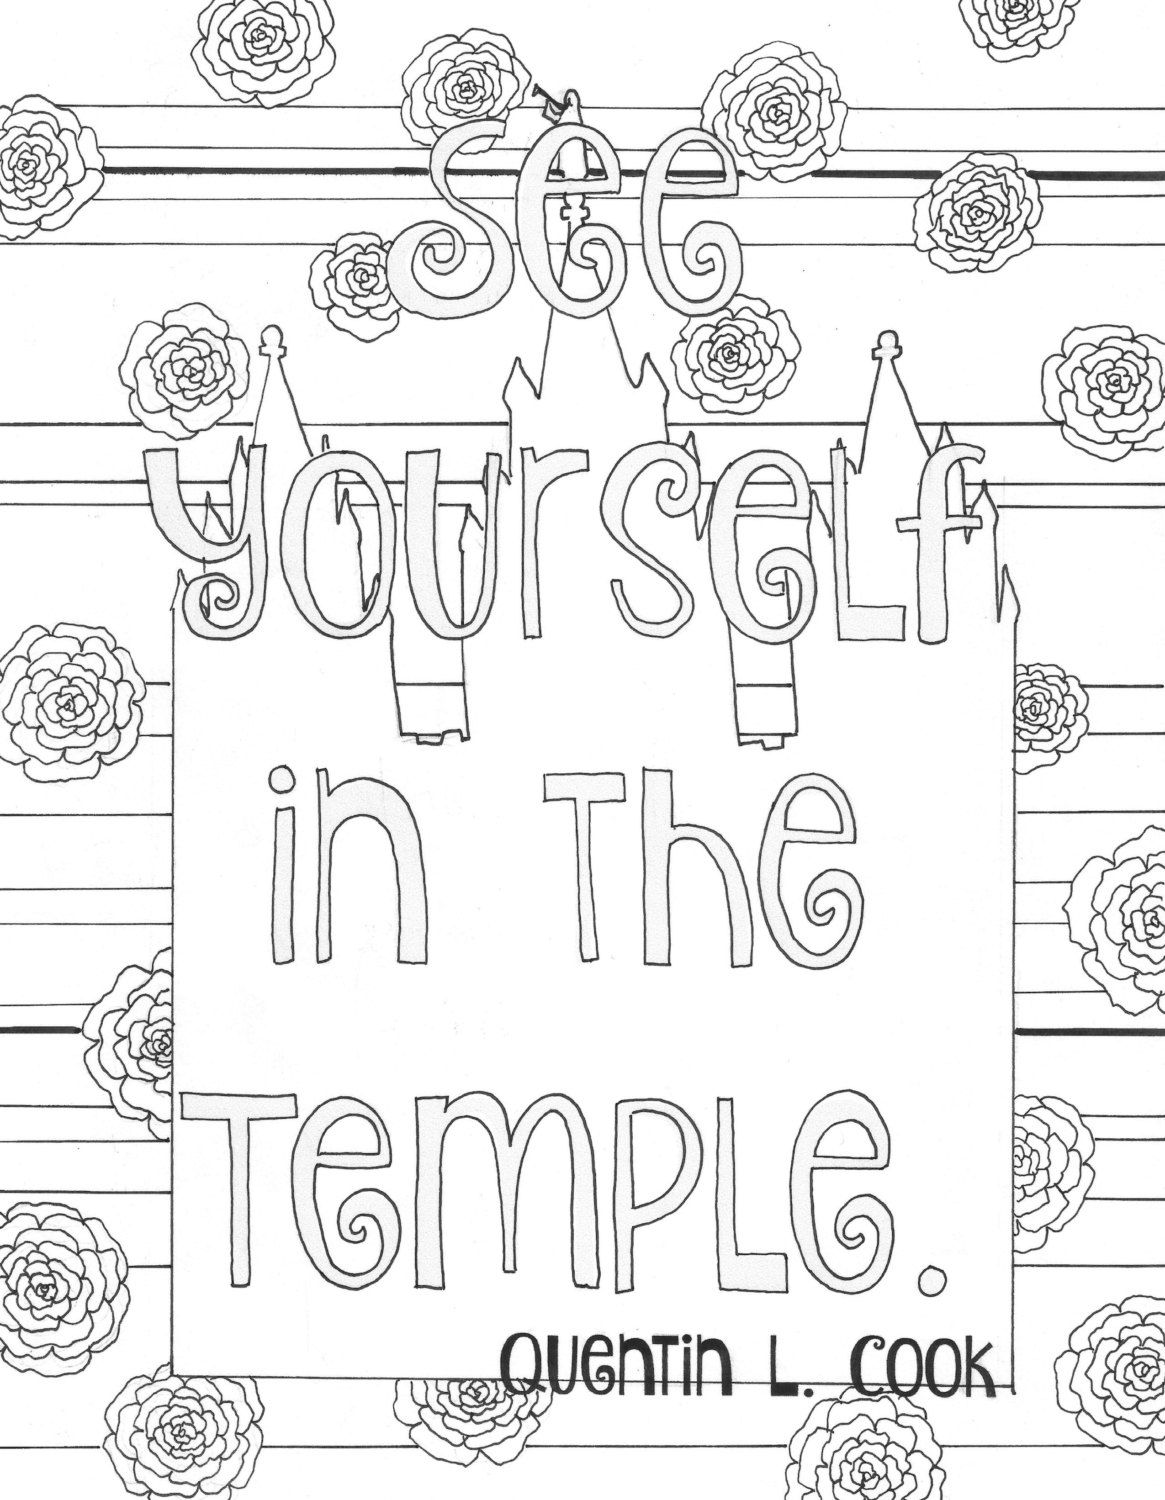 Lds Mormon General Conference Quote Coloring Page Packet | Páginas ...